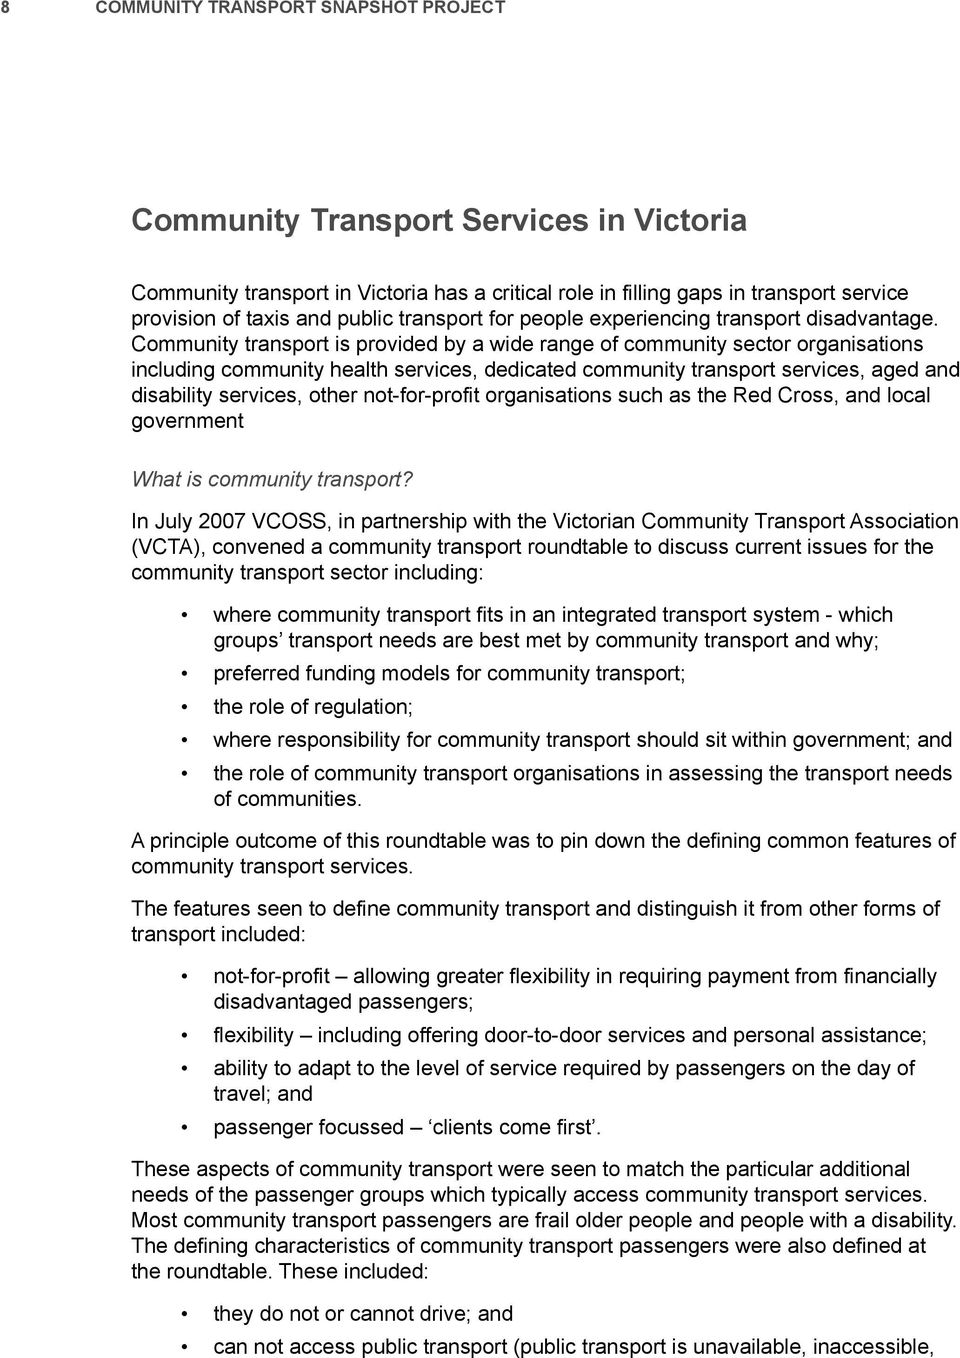 Community transport is provided by a wide range of community sector organisations including community health services, dedicated community transport services, aged and disability services, other